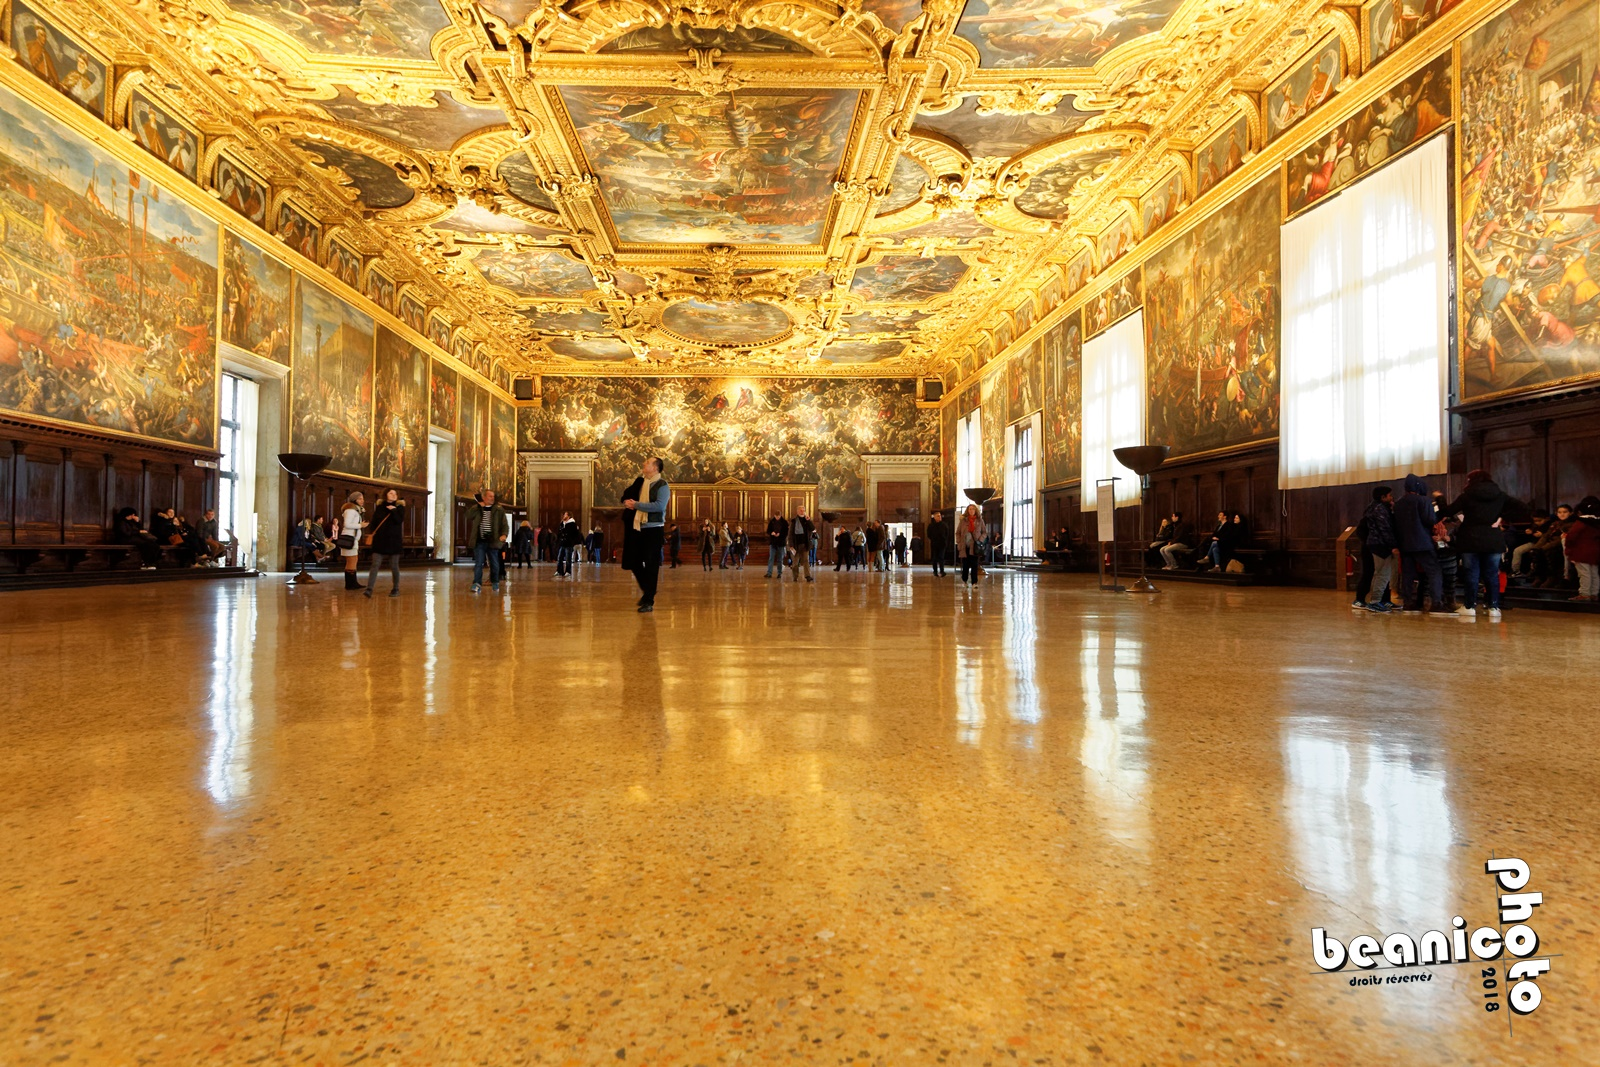 www.beanico-photo.fr - Canon 5DIII - Sigma Ex 20mm - f/5.6 1/20 ISO6400 - Venise - Palais des Doges